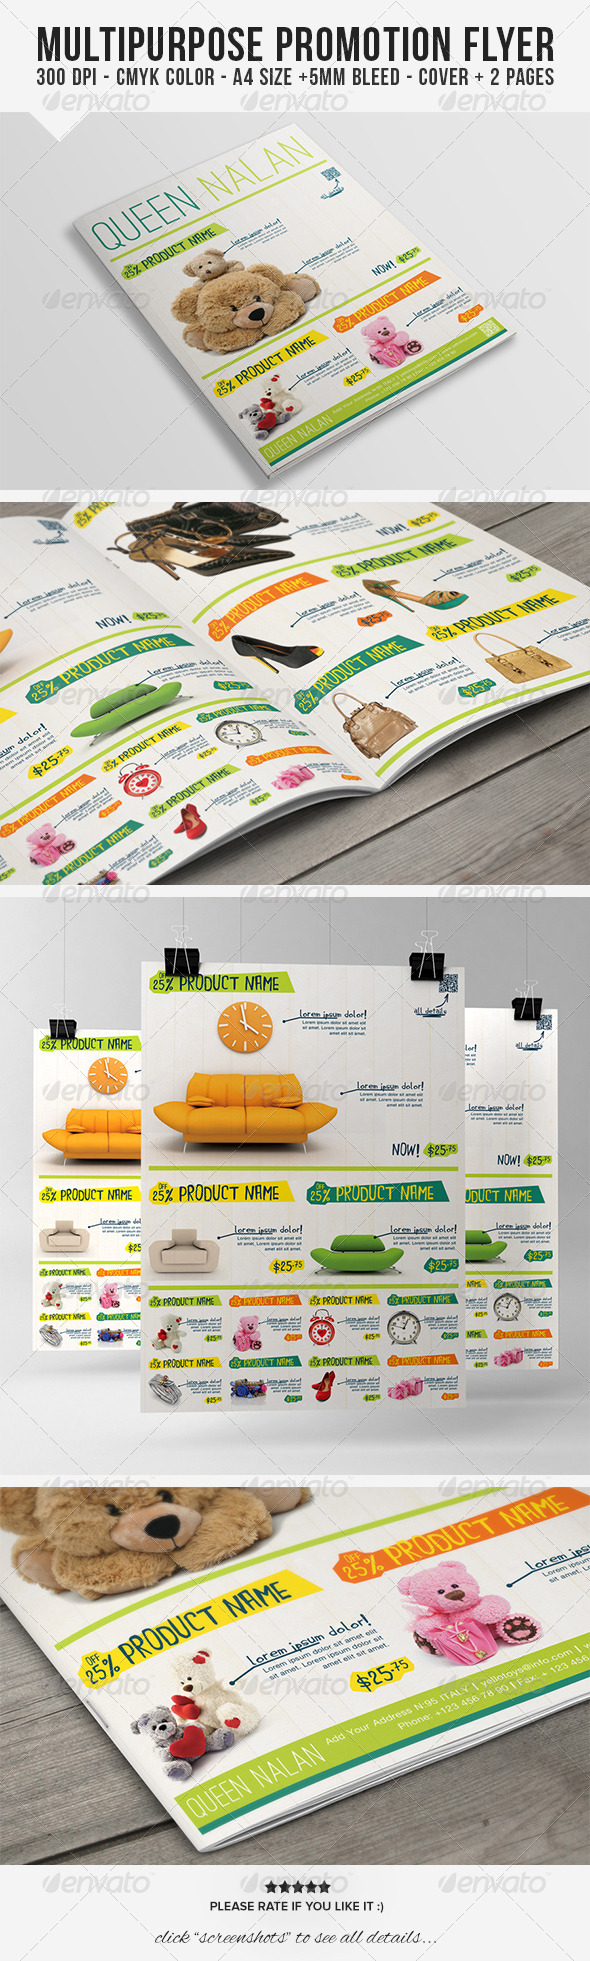 Multipurpose Product Promotion Flyer - Commerce Flyers